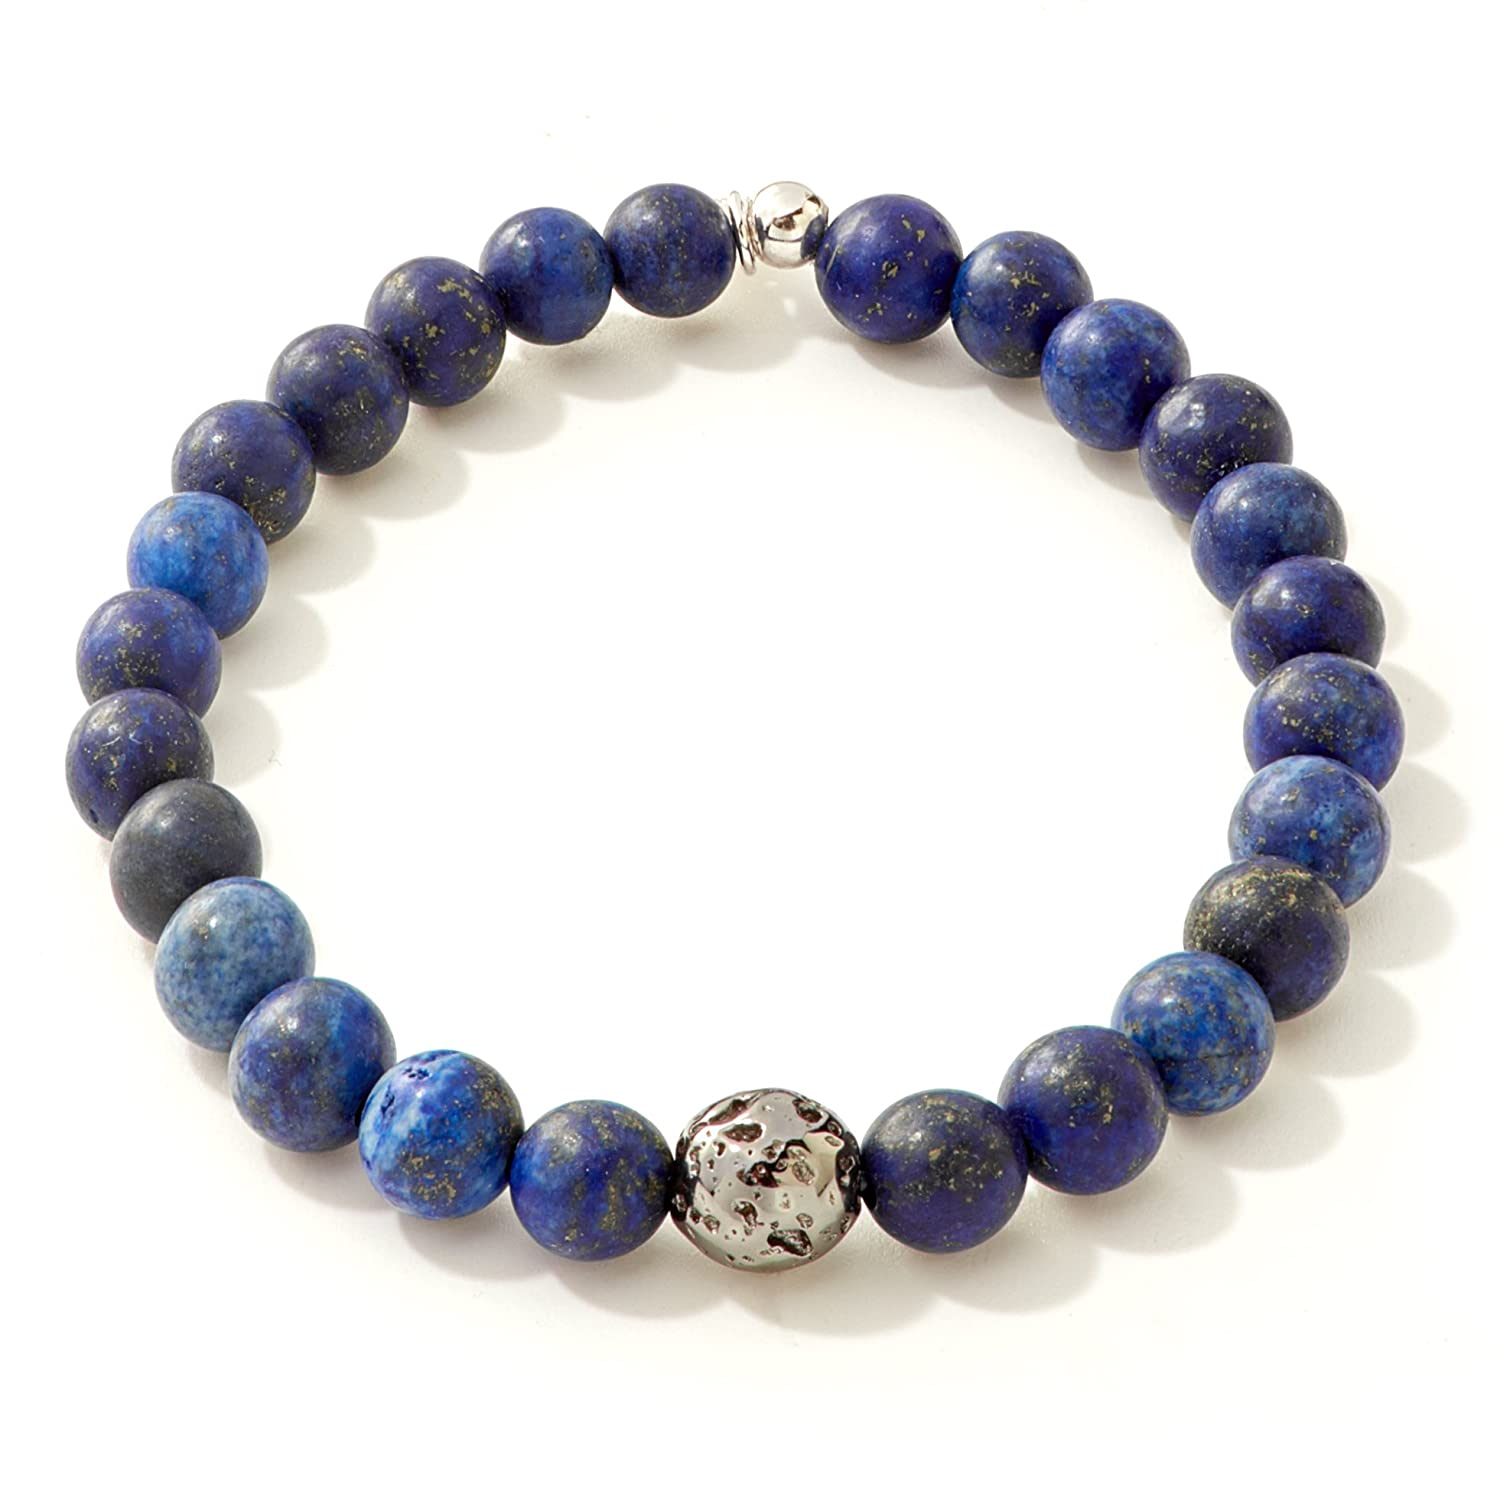 Tateossian Asteroid Matte Beaded Bracelet Blue - Medium 6.8 Inches BL7328